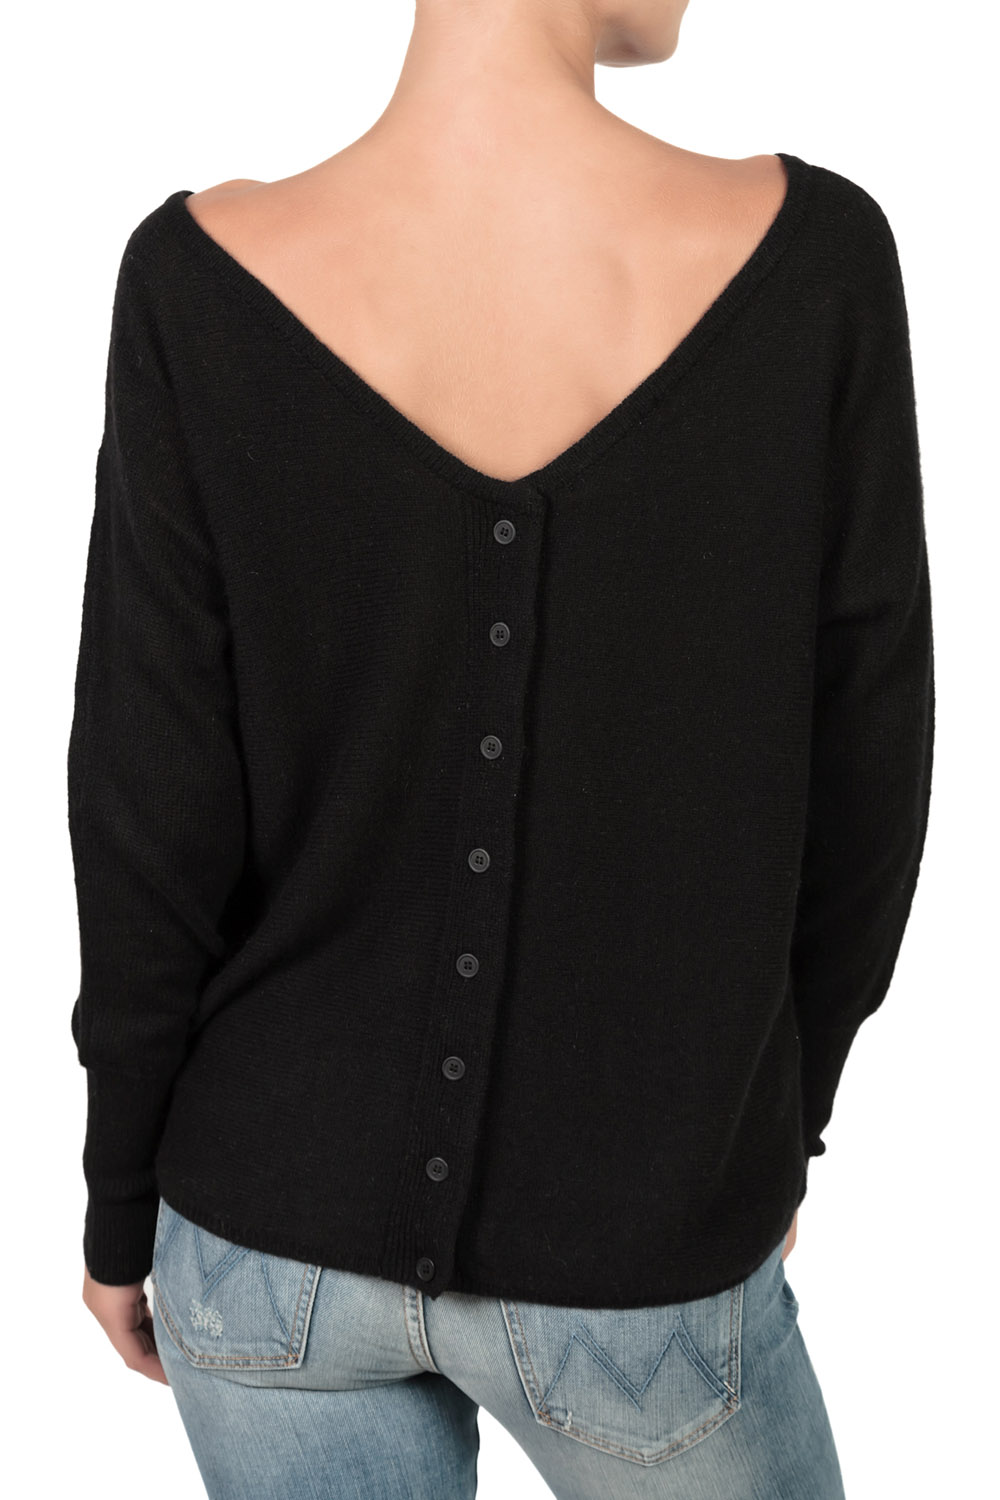 Subtle luxury v back button down sweater black in black lyst for Luxury clothing